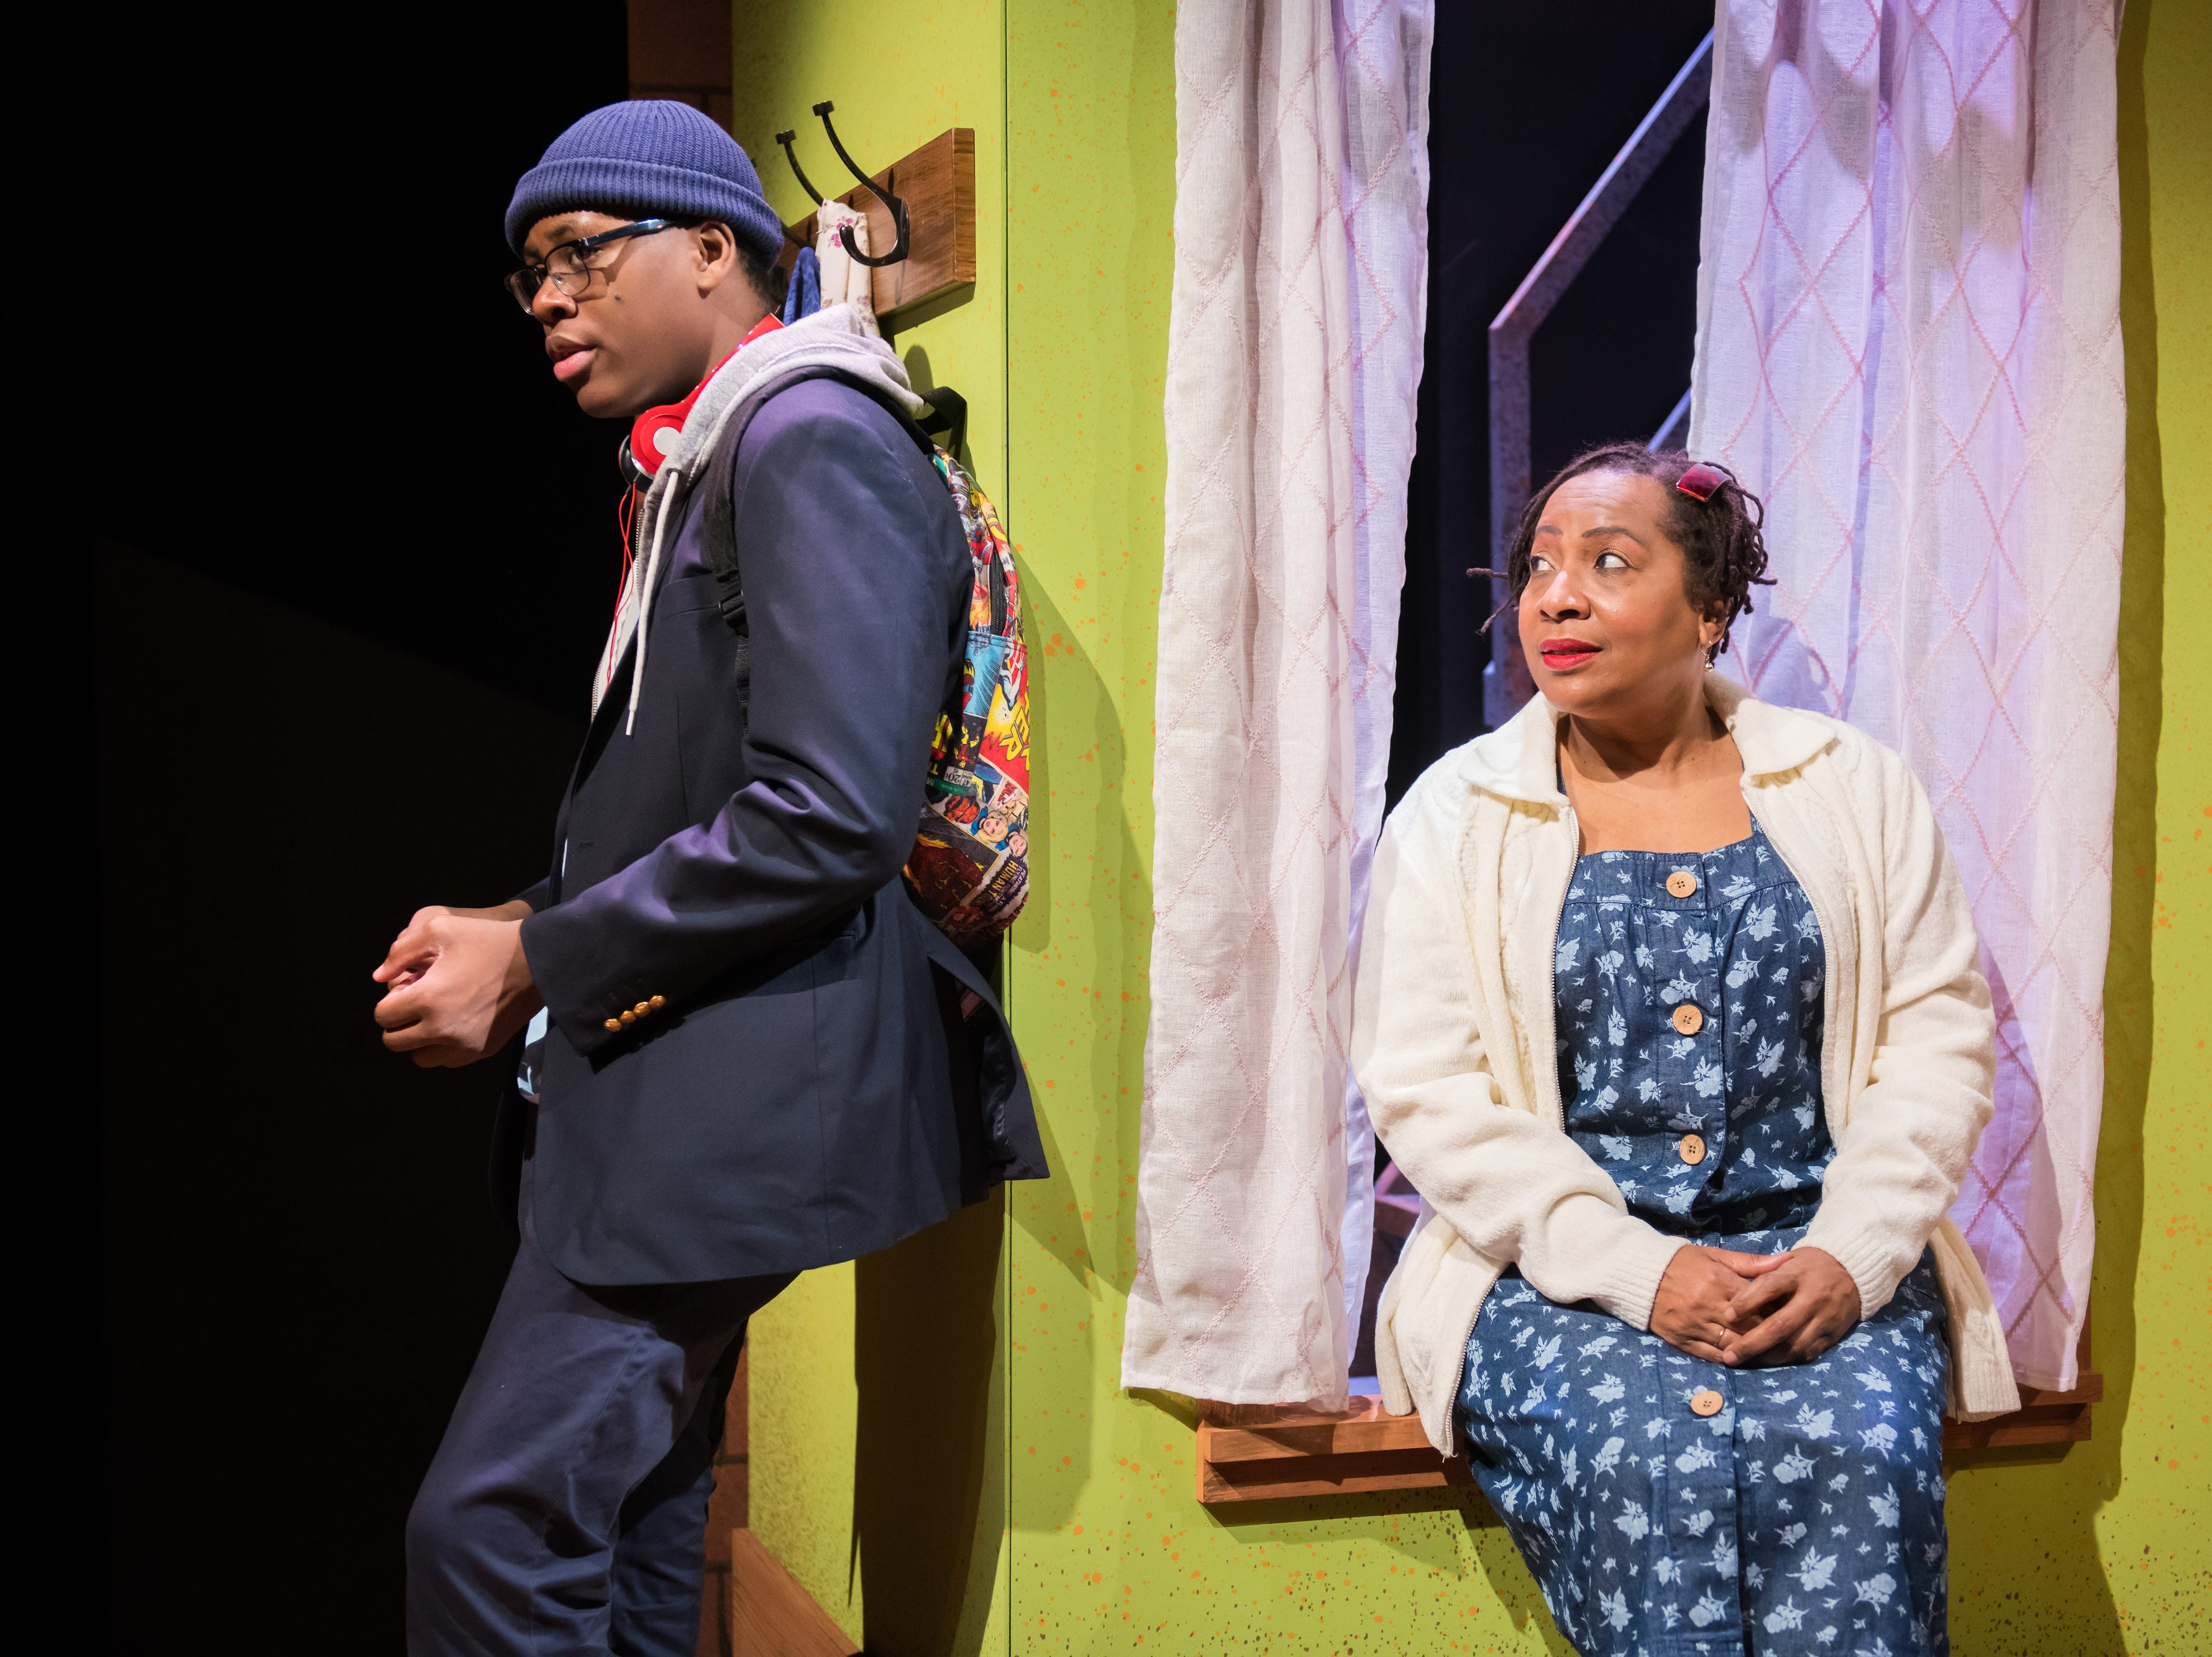 """Kamani Graham and Tosha Freeman perform in First Stage's production of """"Locomotion"""" by Jacqueline Woodson, which continues through Feb. 24 at the Milwaukee Youth Arts Center, 325 W. Walnut St."""